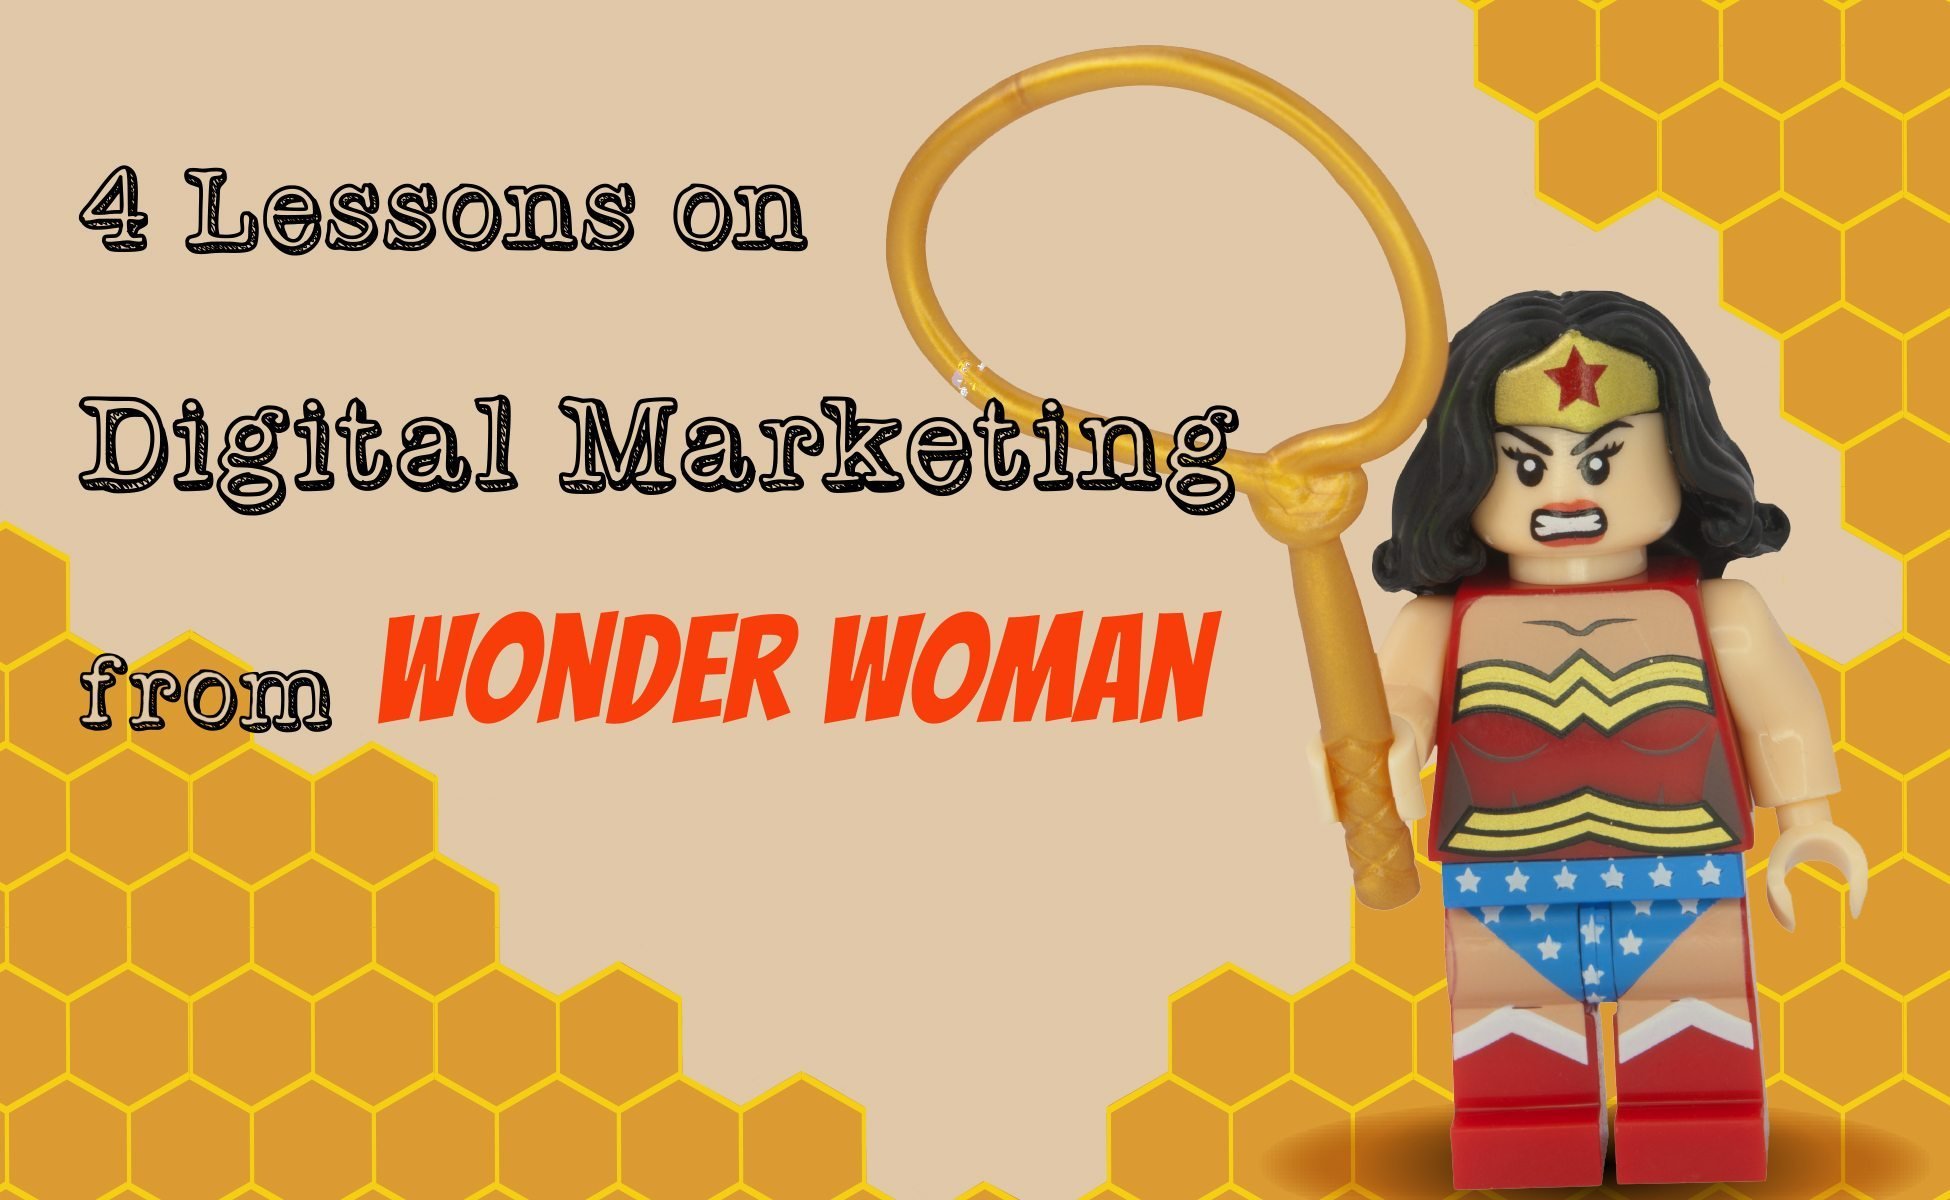 4 Lessons on Digital Marketing from Wonder Woman